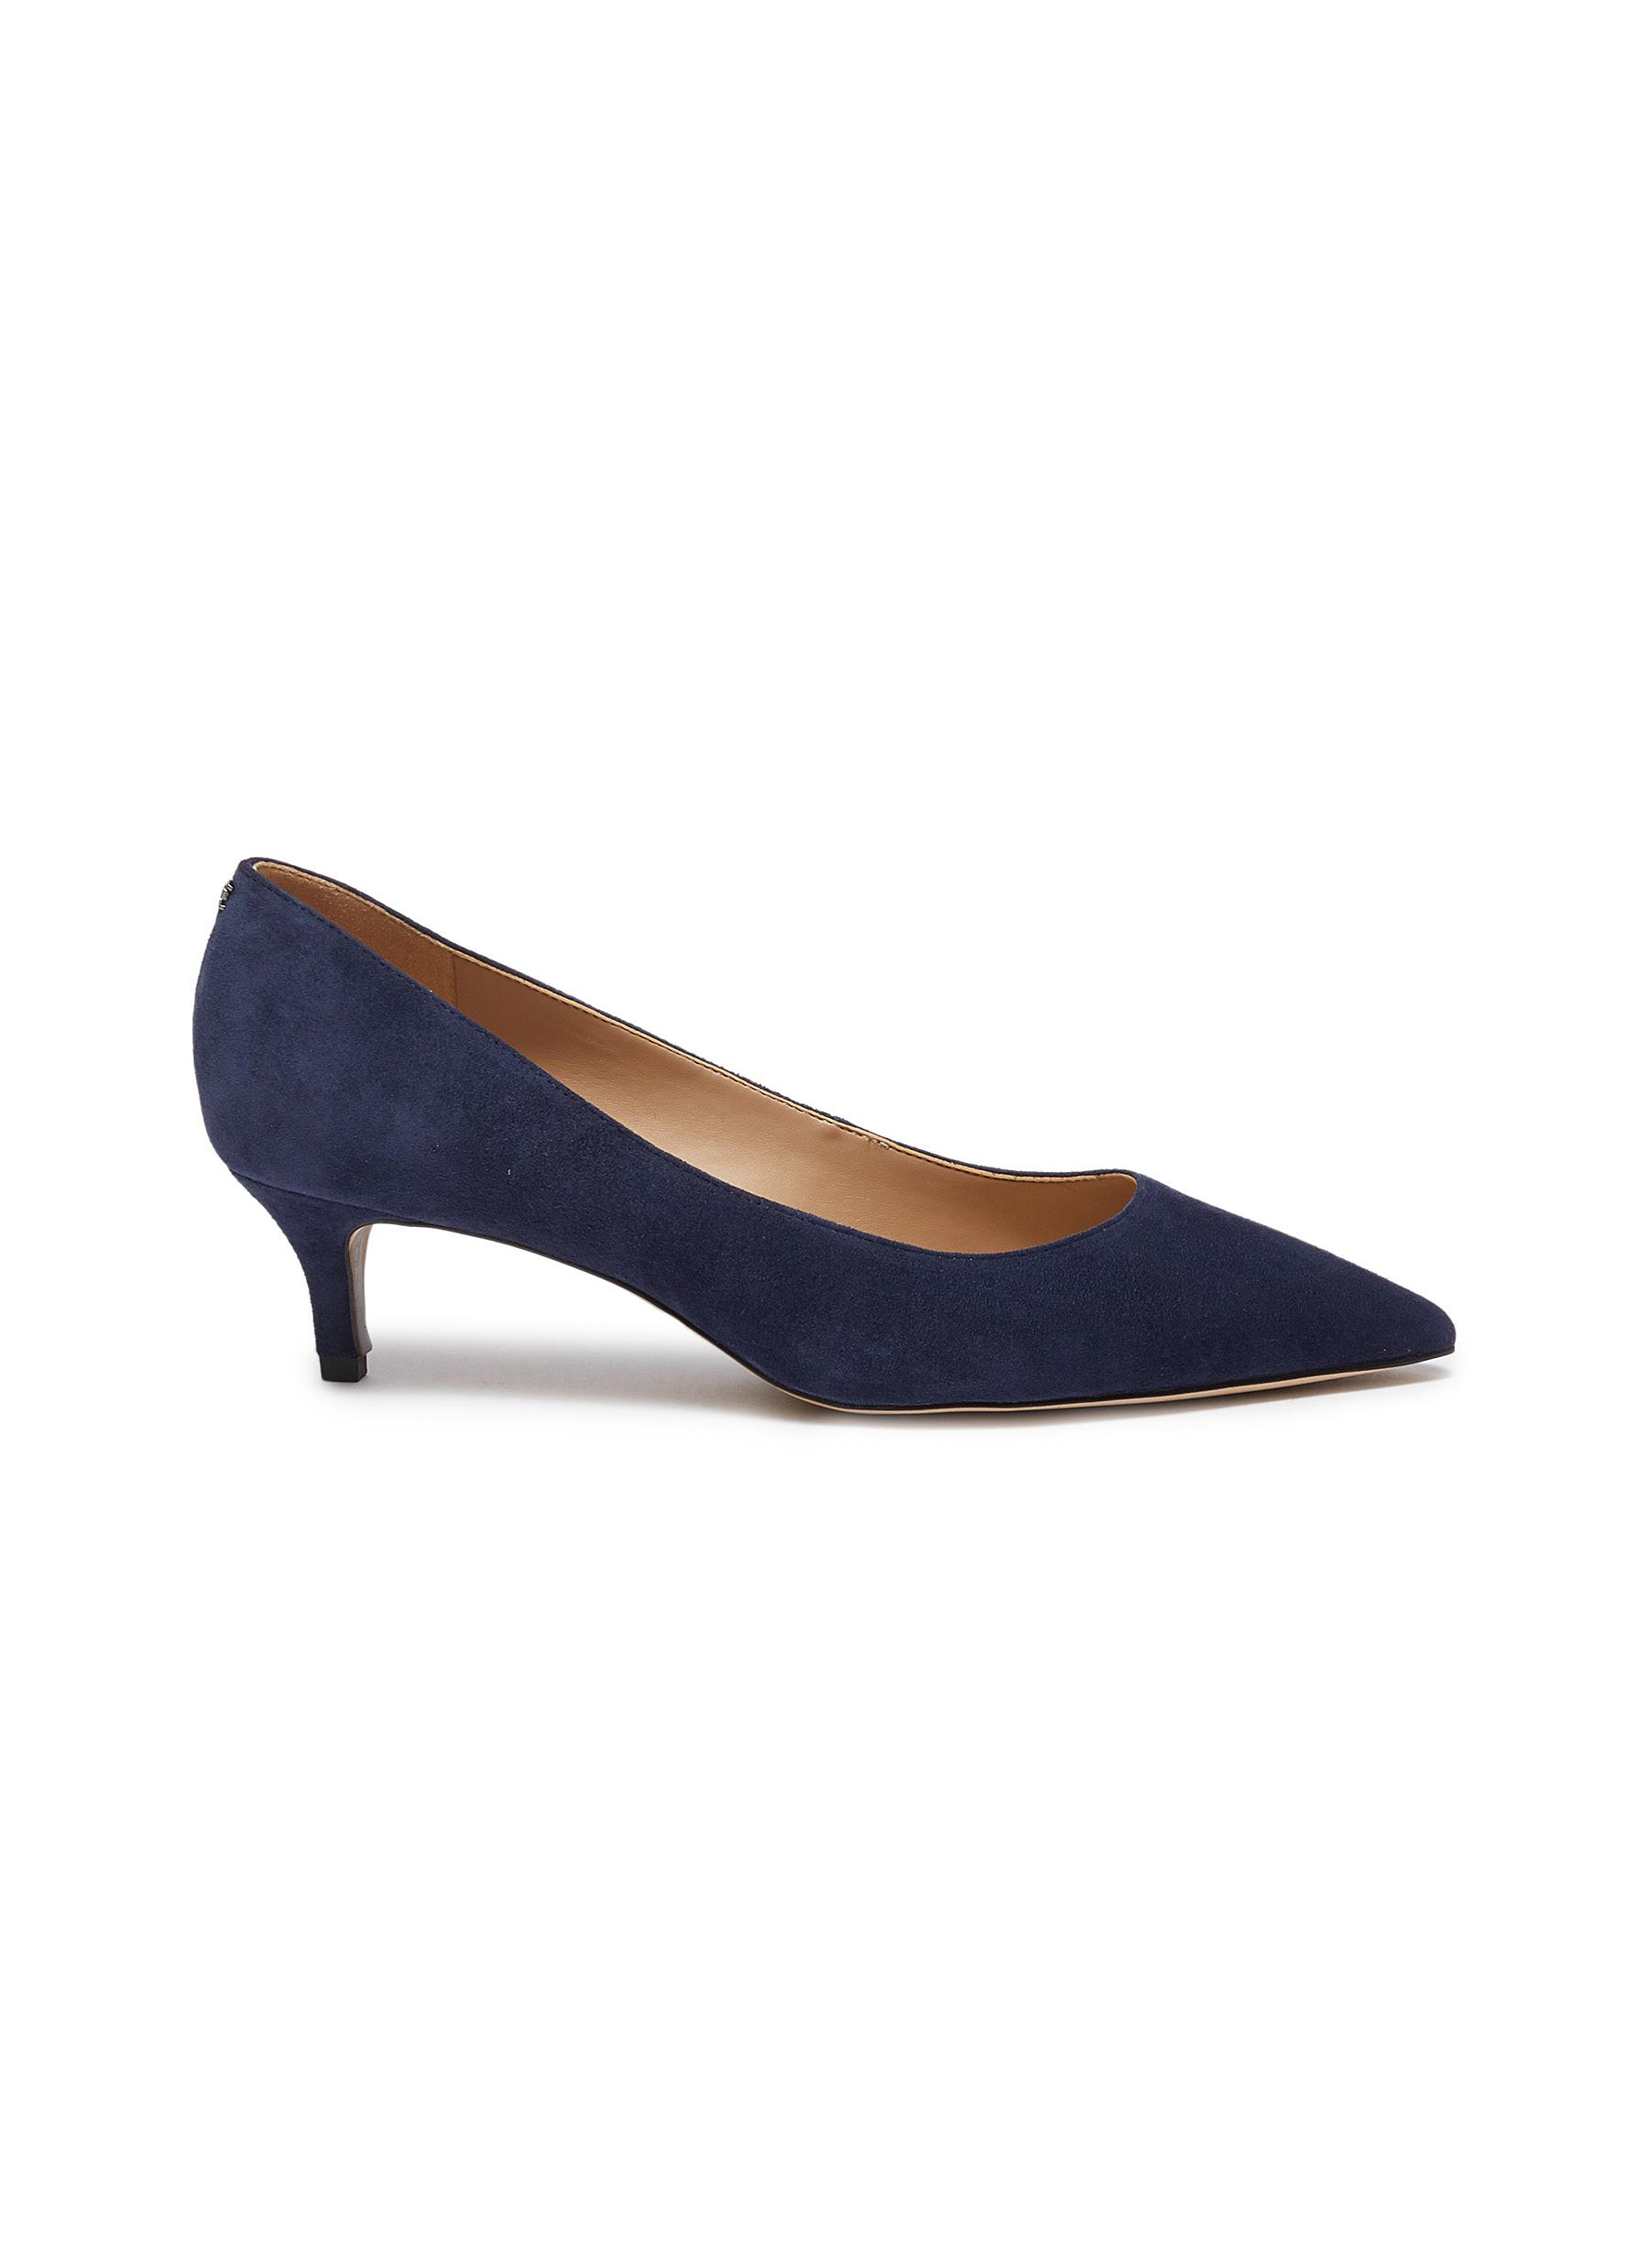 Sam Edelman Low Heels Dori suede pumps